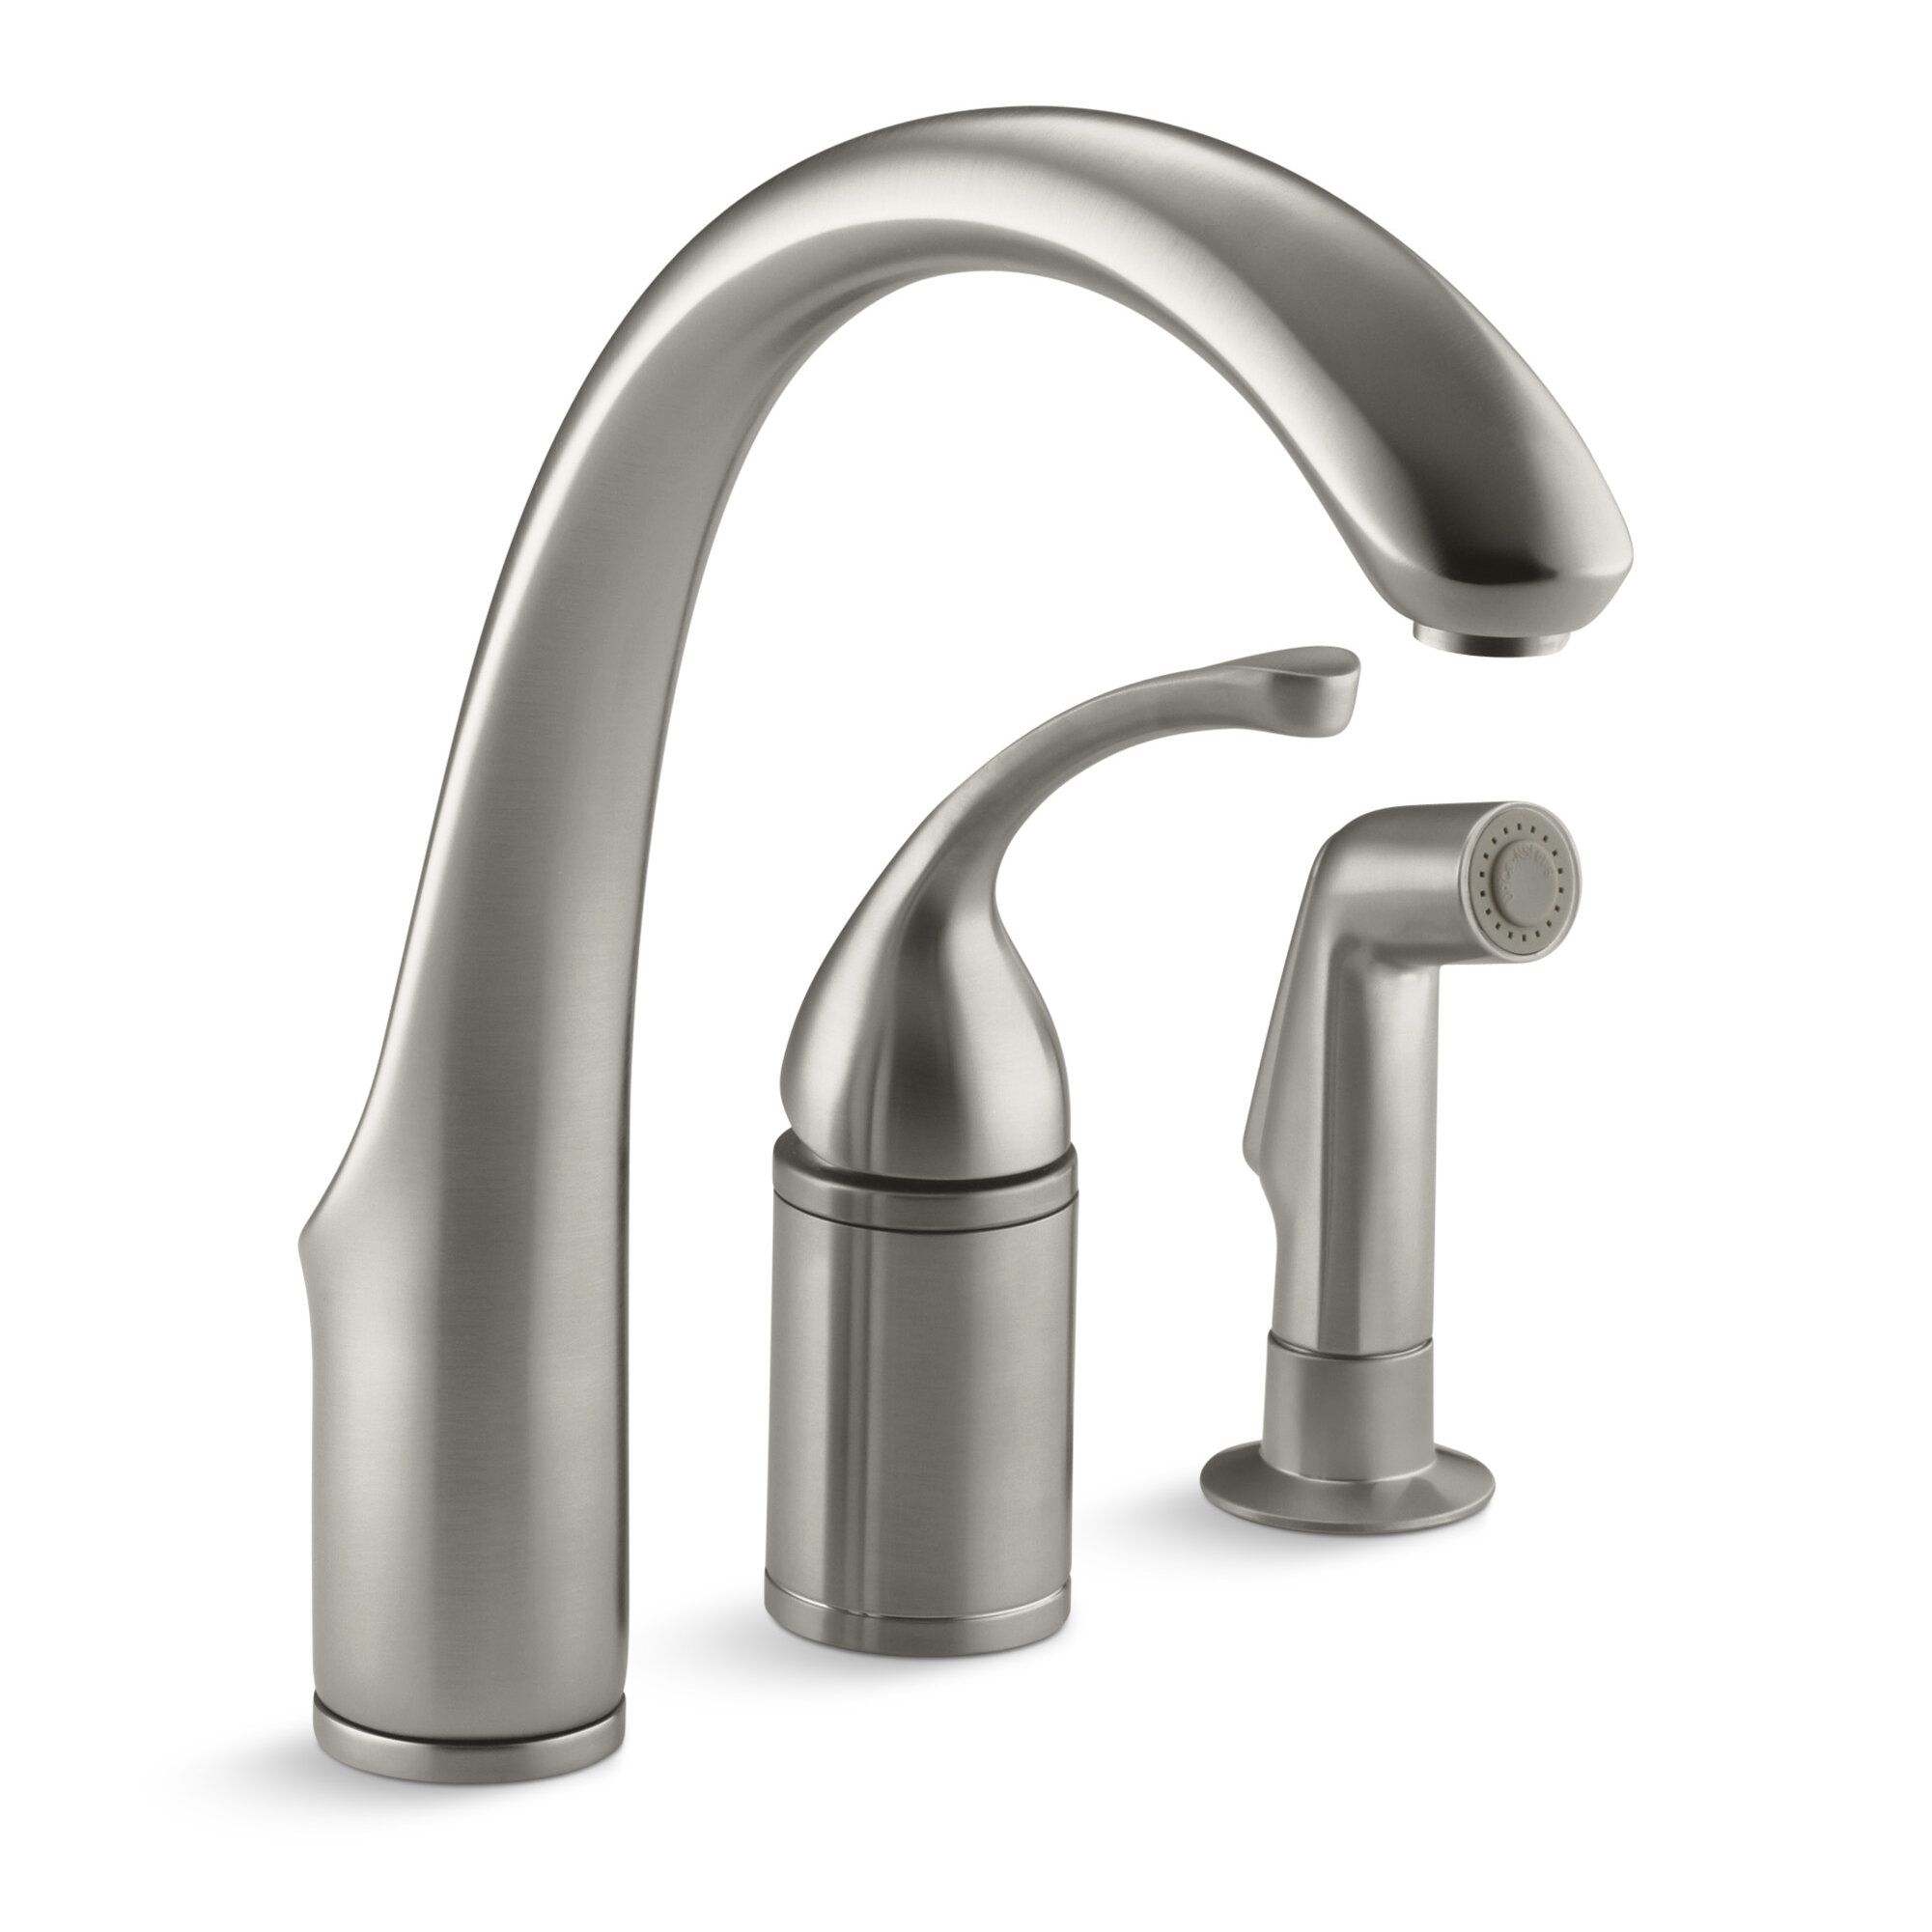 K 10430 bnbvcp kohler forté 3 hole remote valve kitchen sink faucet with 9 spout with matching finish sidespray reviews wayfair